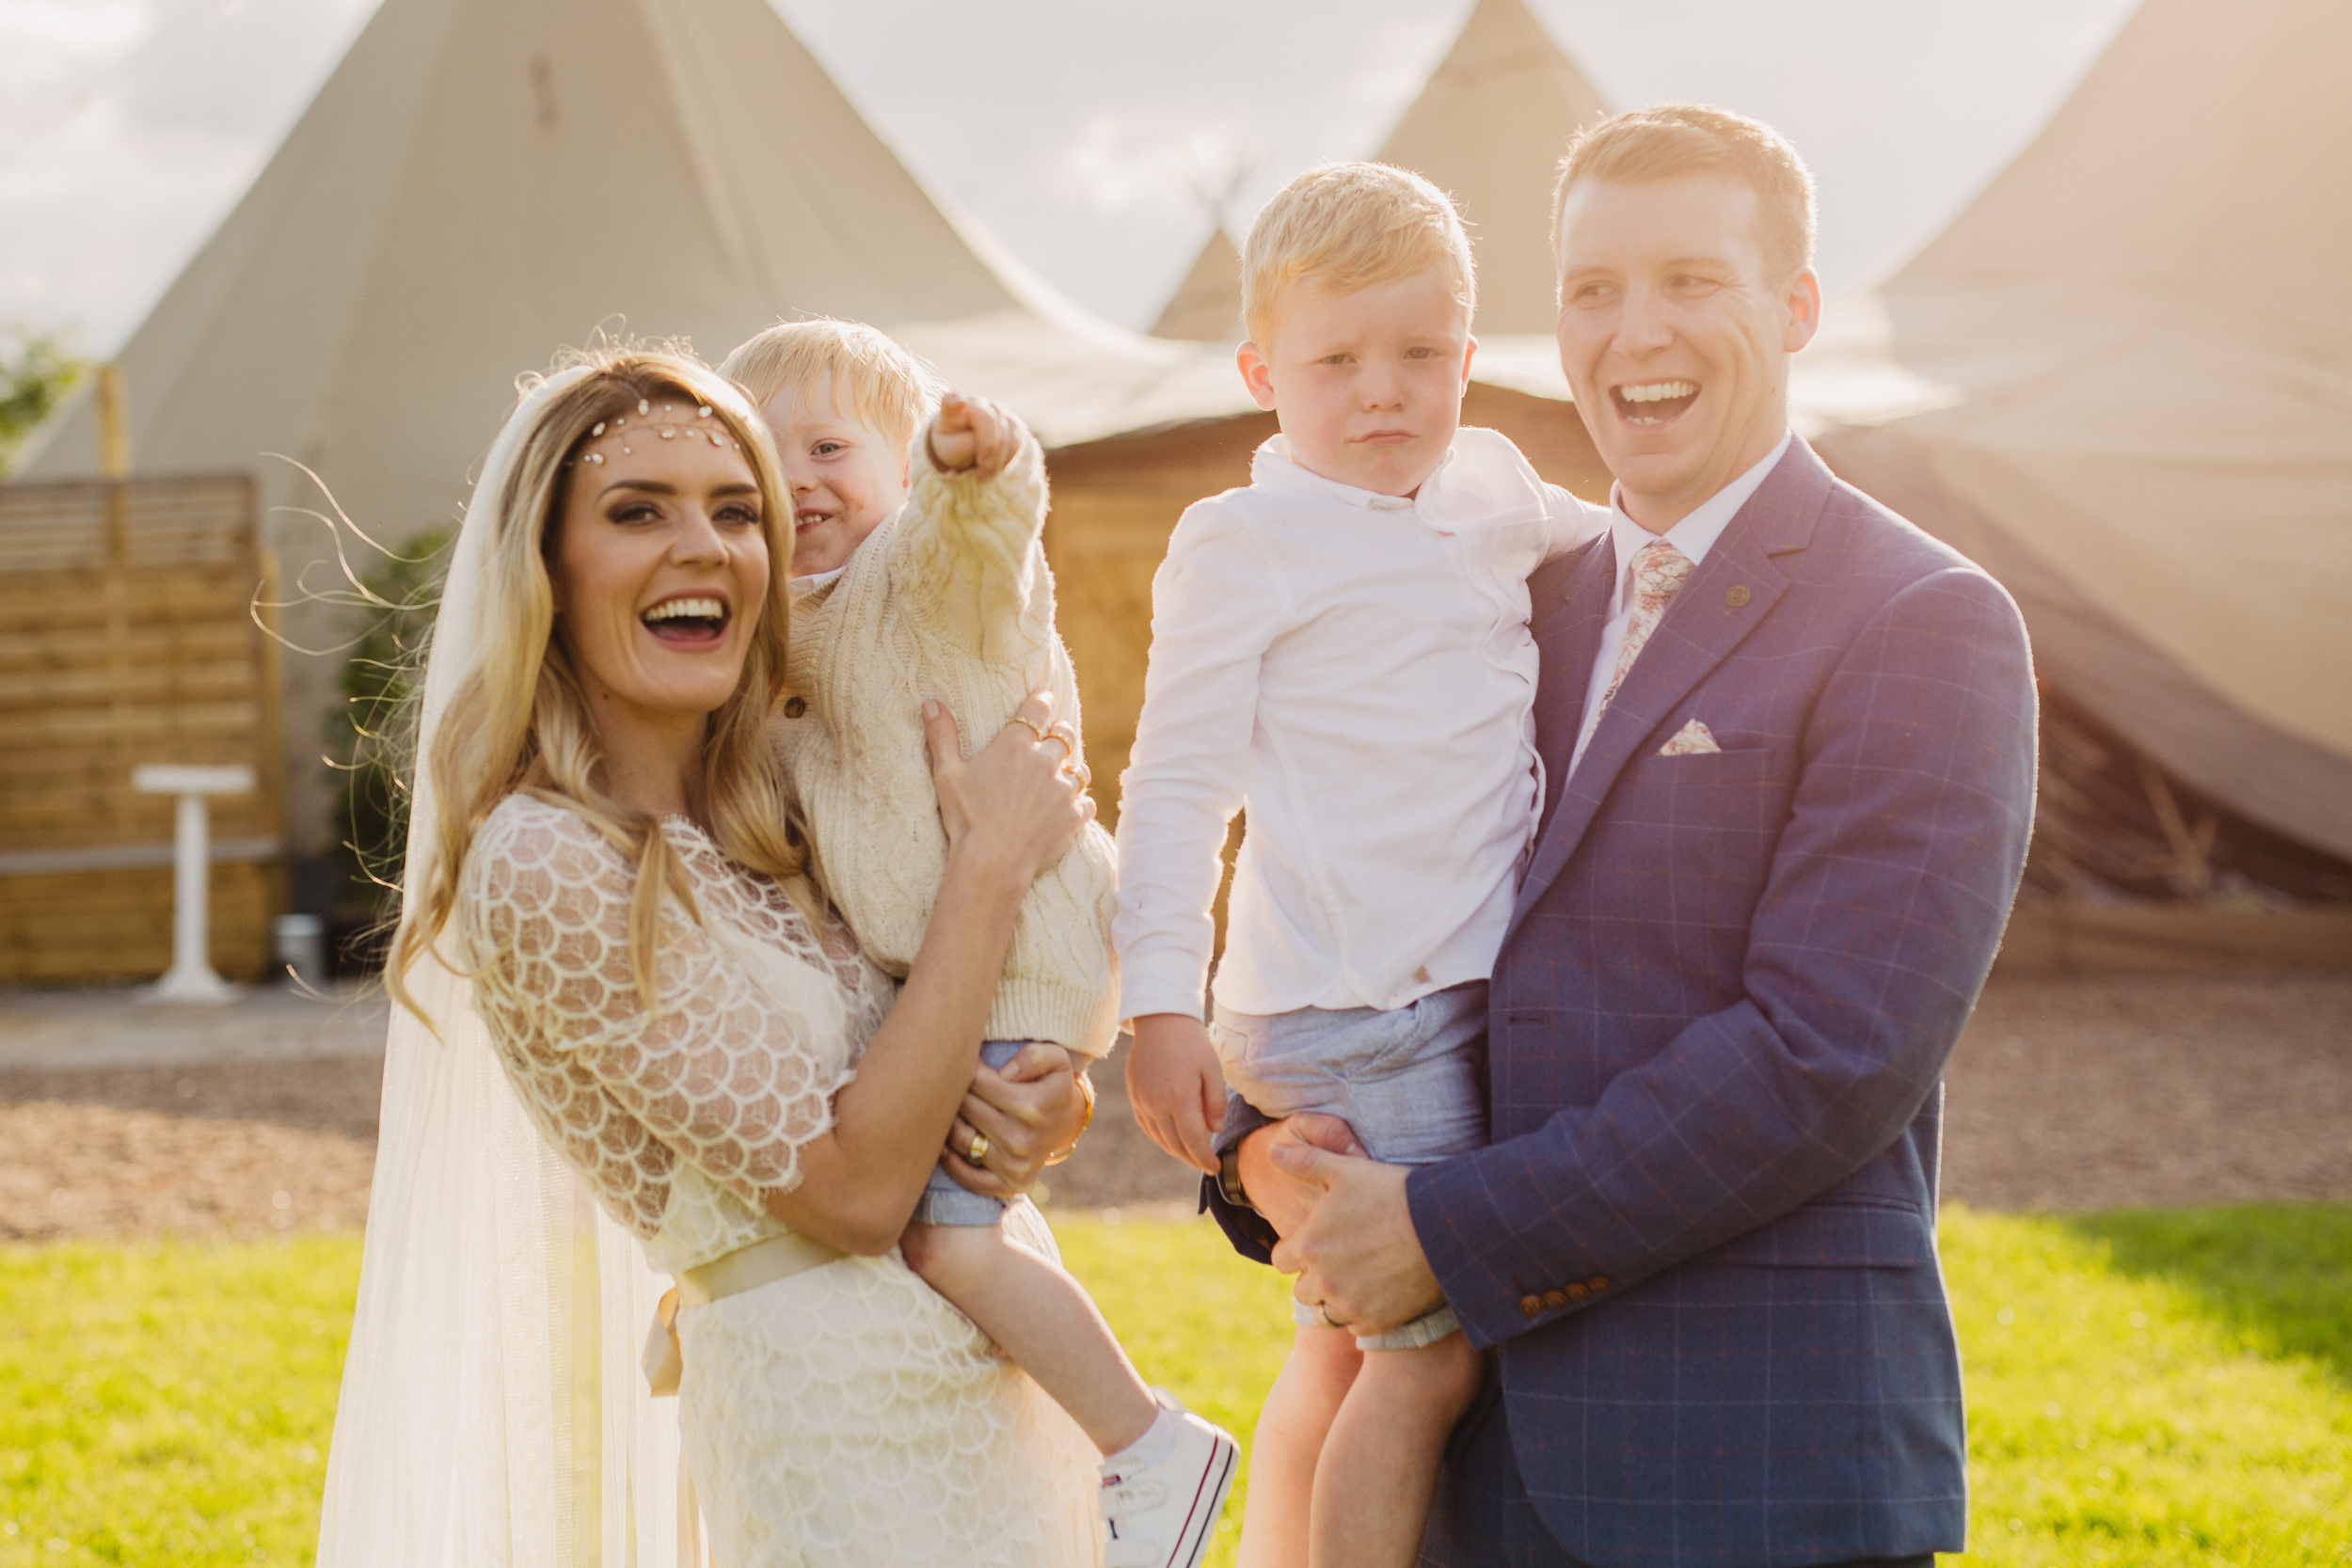 Gemma-Bohemian-Outdoor-Tipi-Wedding-Laid-Back-Relaxed-Family-Wedding-Kate-Beaumont-Astilbe-by-S6-Photography-Sheffield-39.jpg